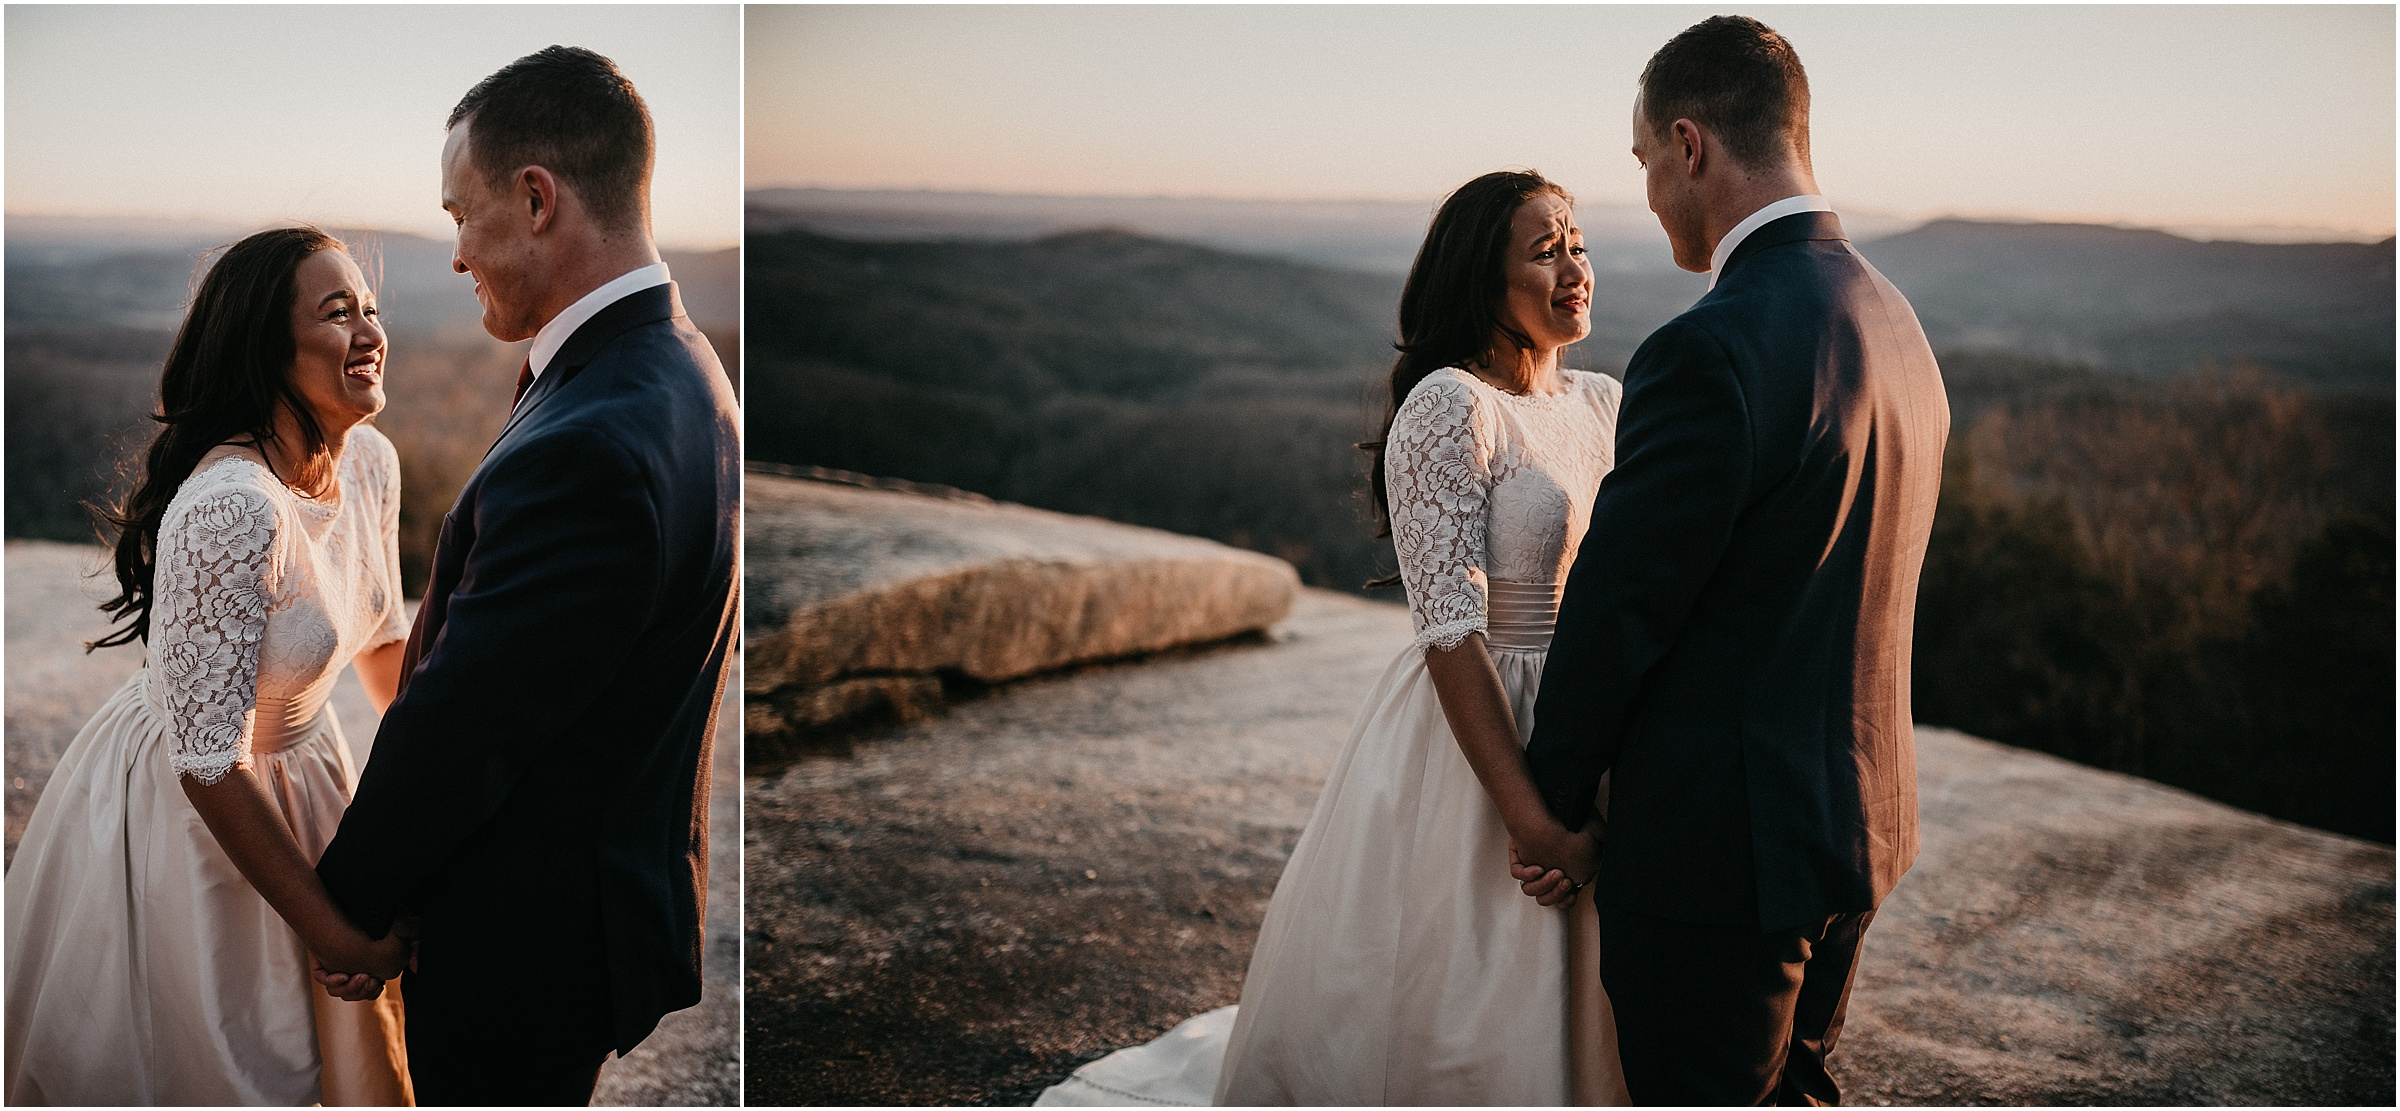 Stone_Mountain_NC_Elopement_53.JPG